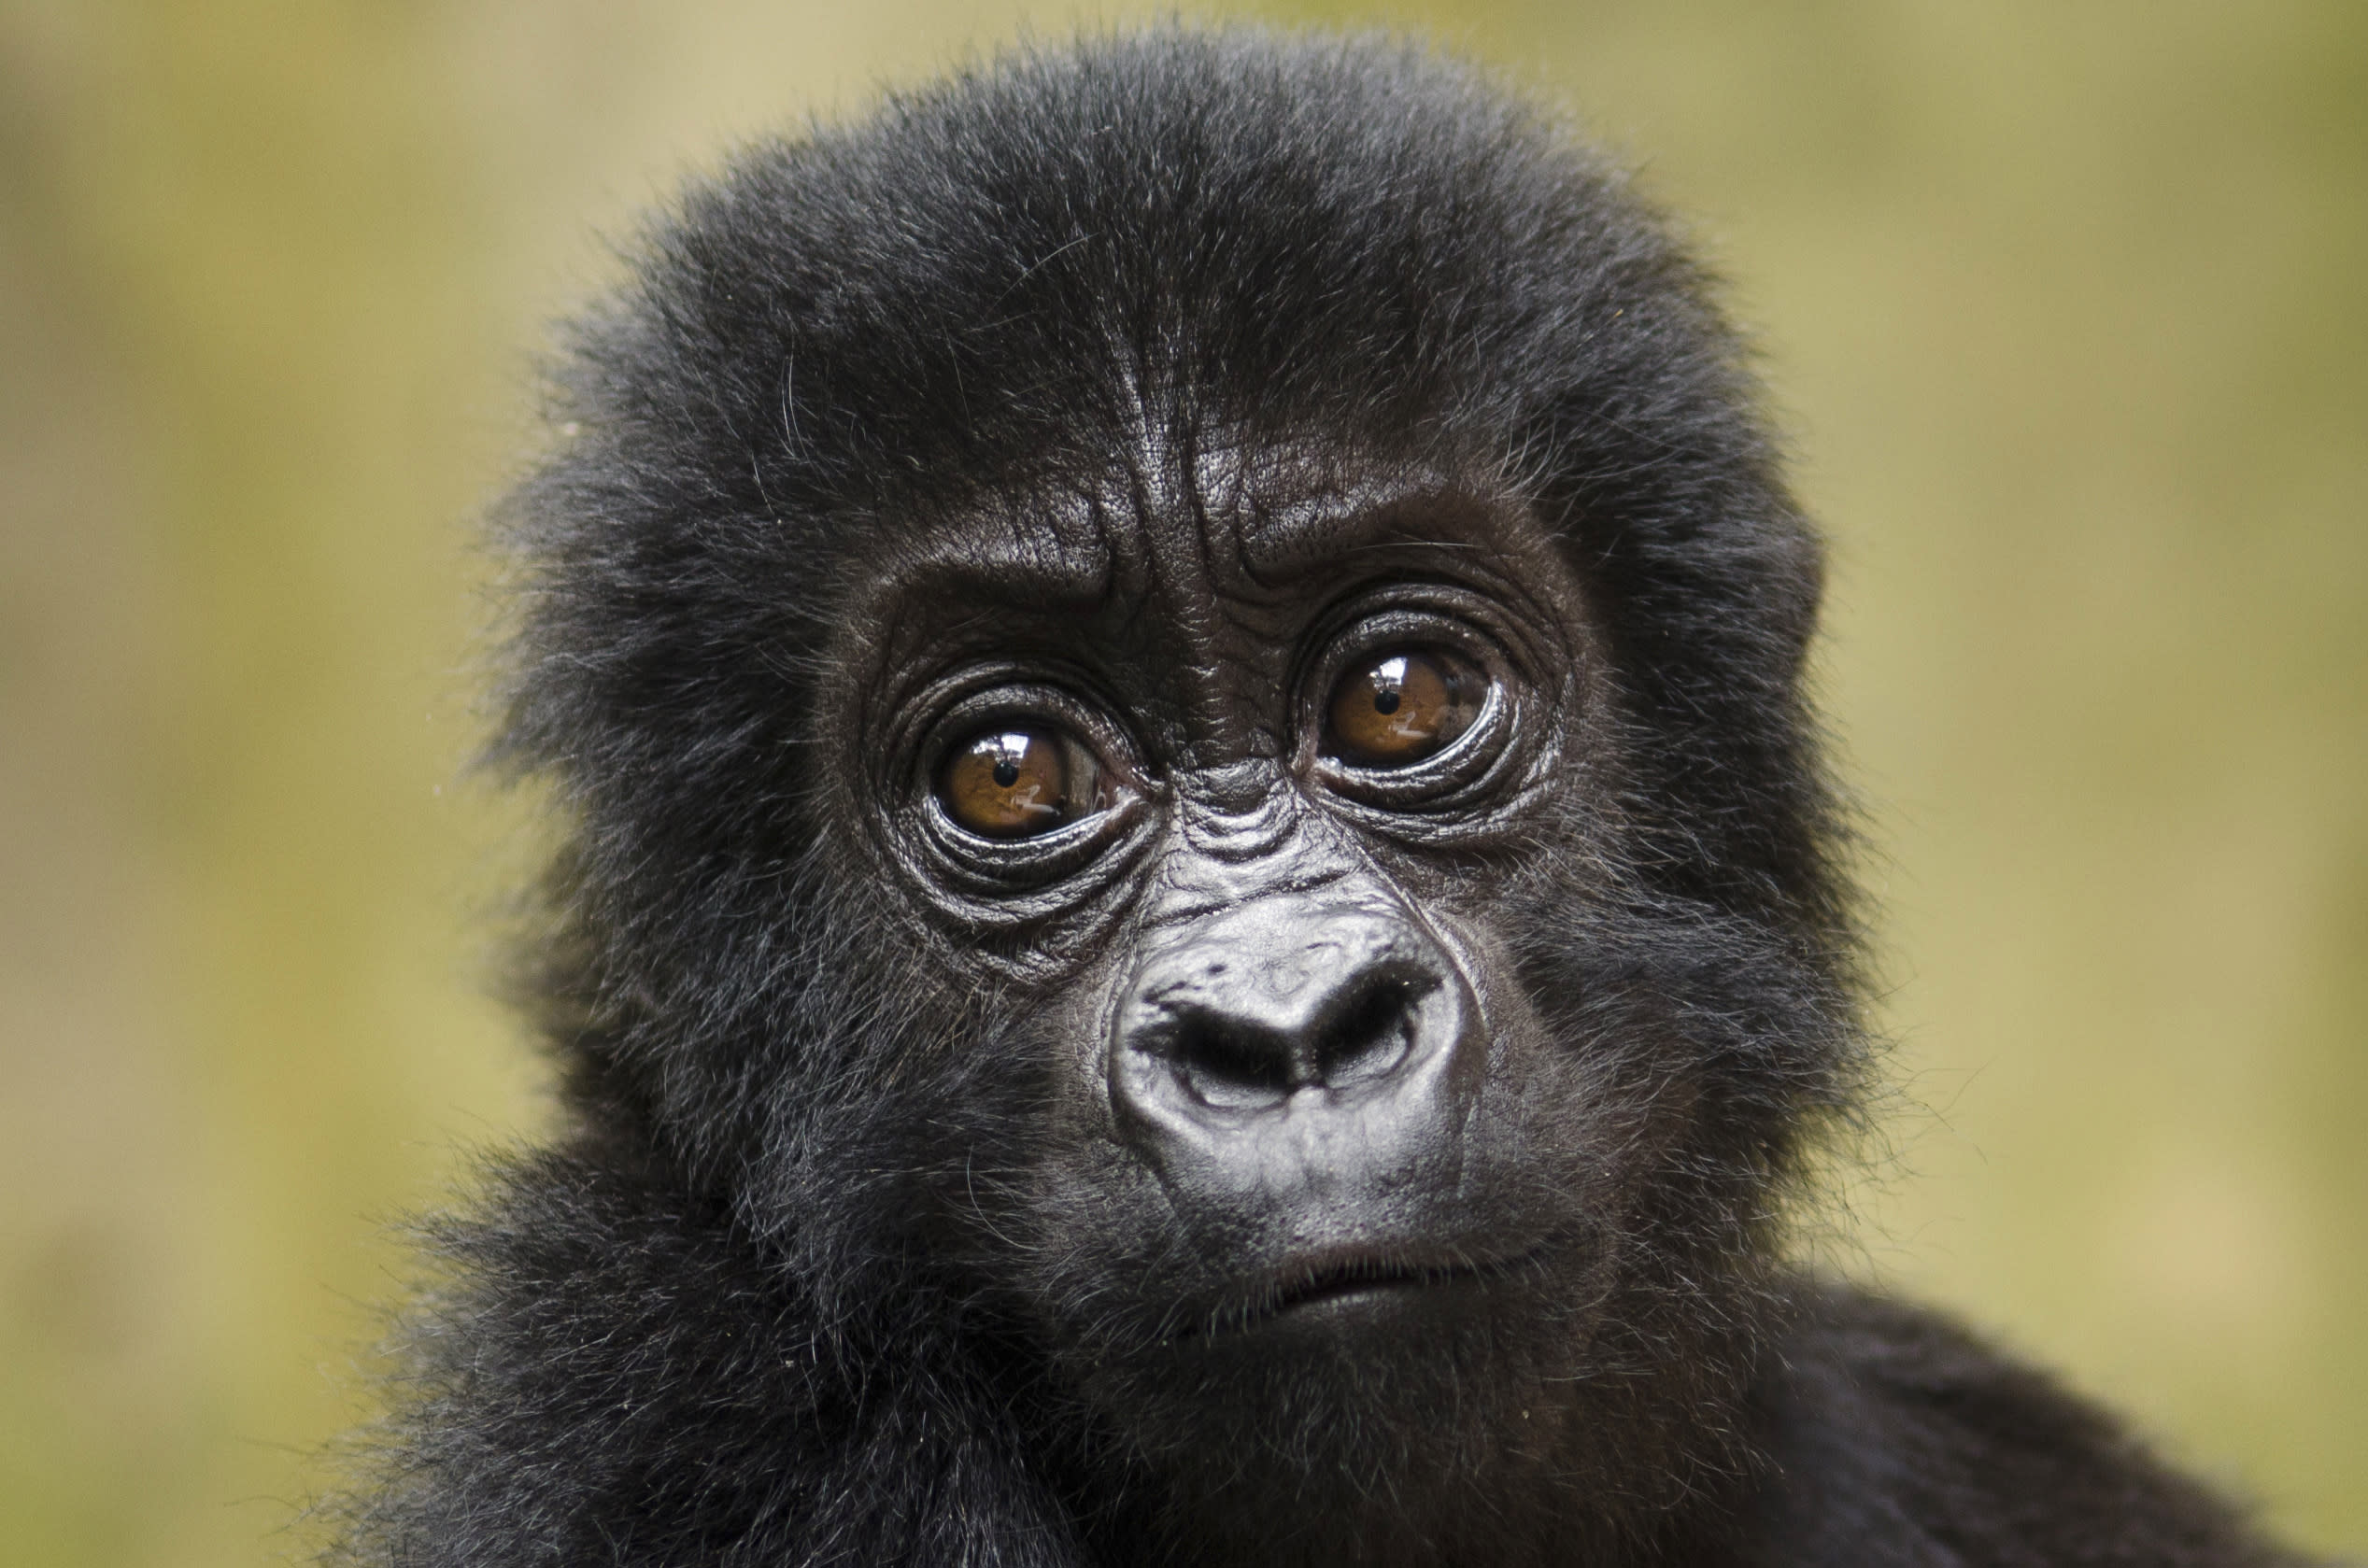 FILE - In this Saturday, Sept. 15, 2012 file photo released by Virunga National Park, a baby Grauer's gorilla that had been poached from Kahuzi-Biega National Park is seen at the Senkwekwe Orphan Gorilla Center at Virunga National Park in eastern Congo. Twenty-five species of monkeys, langurs, lemurs and gorillas are on the brink of extinction and need global action to protect them from increasing deforestation and illegal trafficking, researchers said Monday, Oct. 15, 2012. (AP Photo/Virunga National Park, LuAnne Cadd, File) EDITORIAL USE ONLY